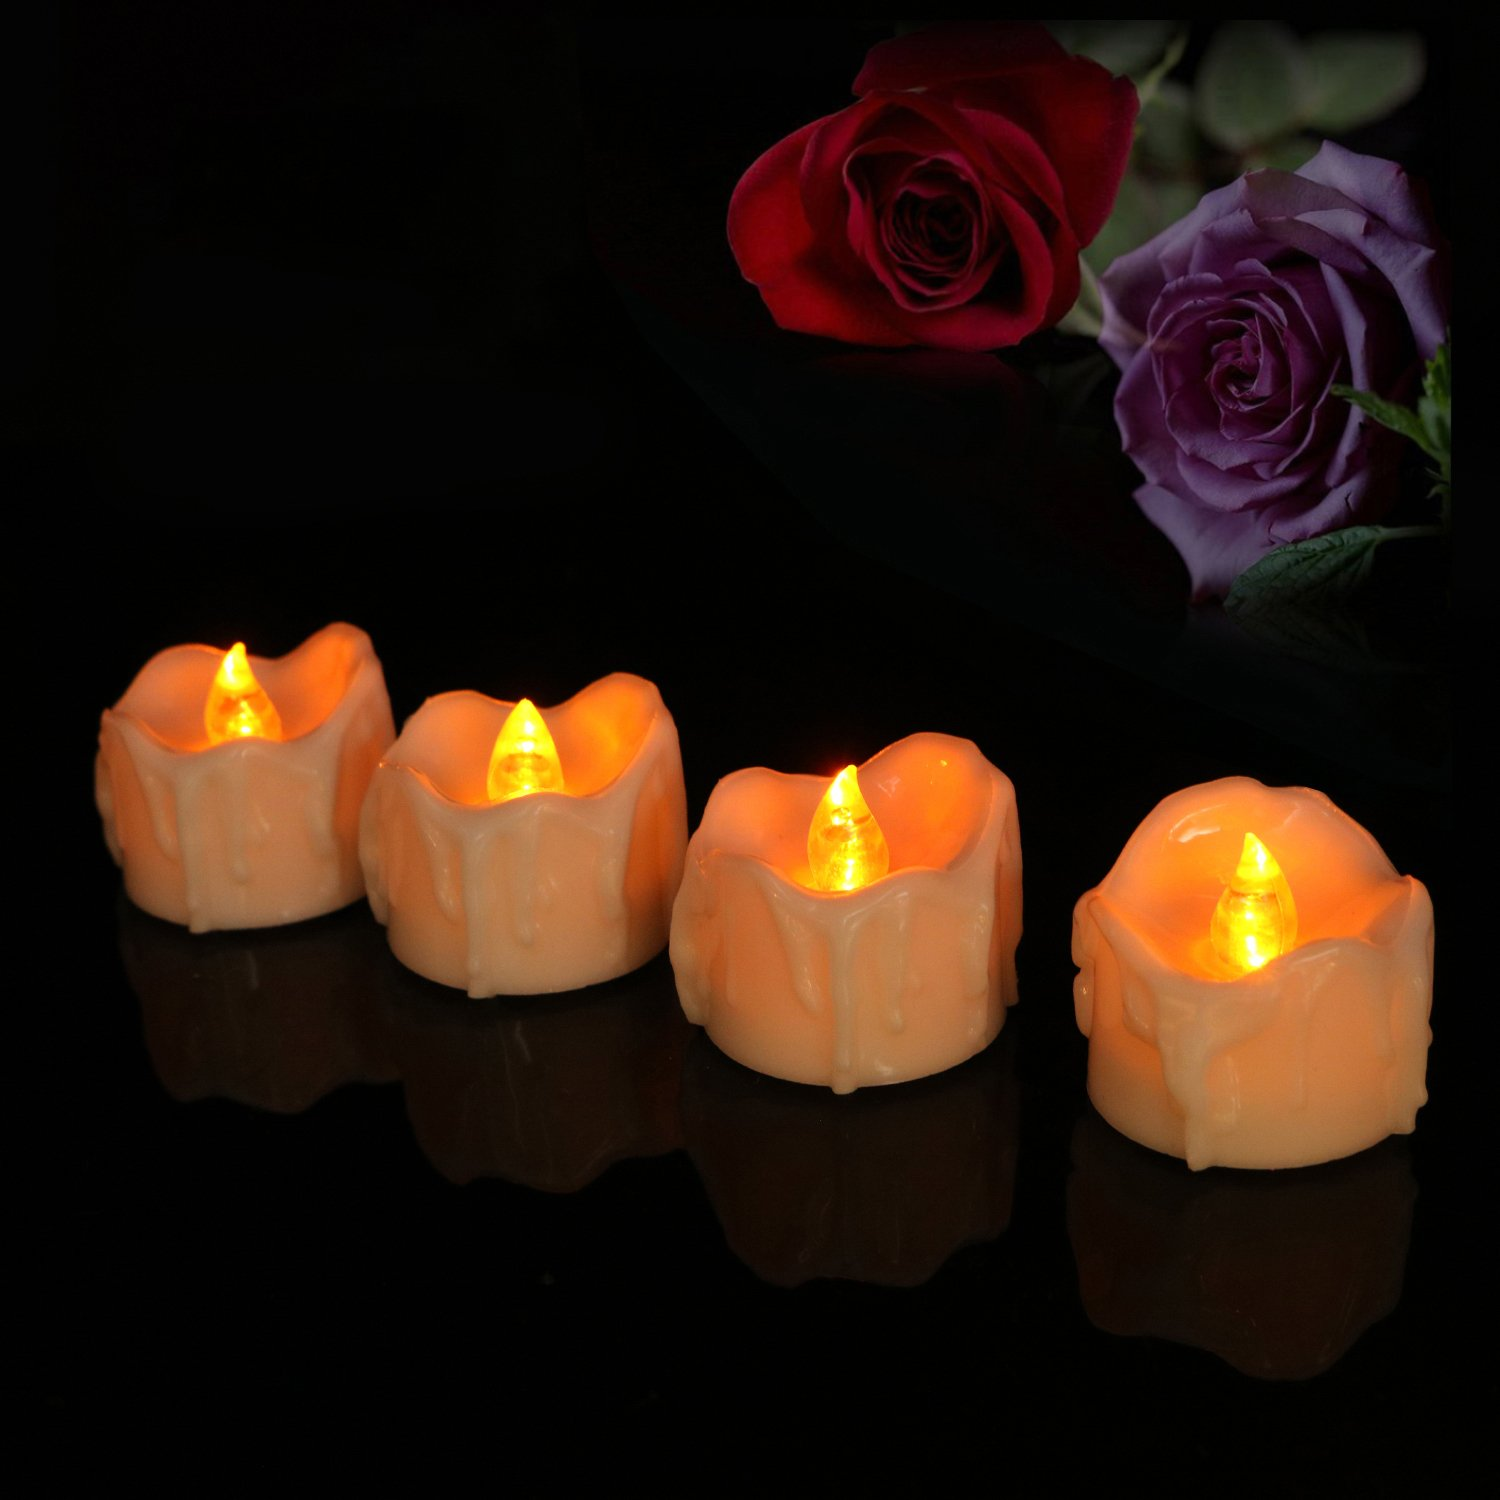 Micandle Set of 24 Yellow Led Tea Candles,Battery LED Flameless Tea Lights Candles for Wedding Party Celebrate,Wax Dripped Amber Yellow Flickering Electric Home Decorate Tealights Fake Candles